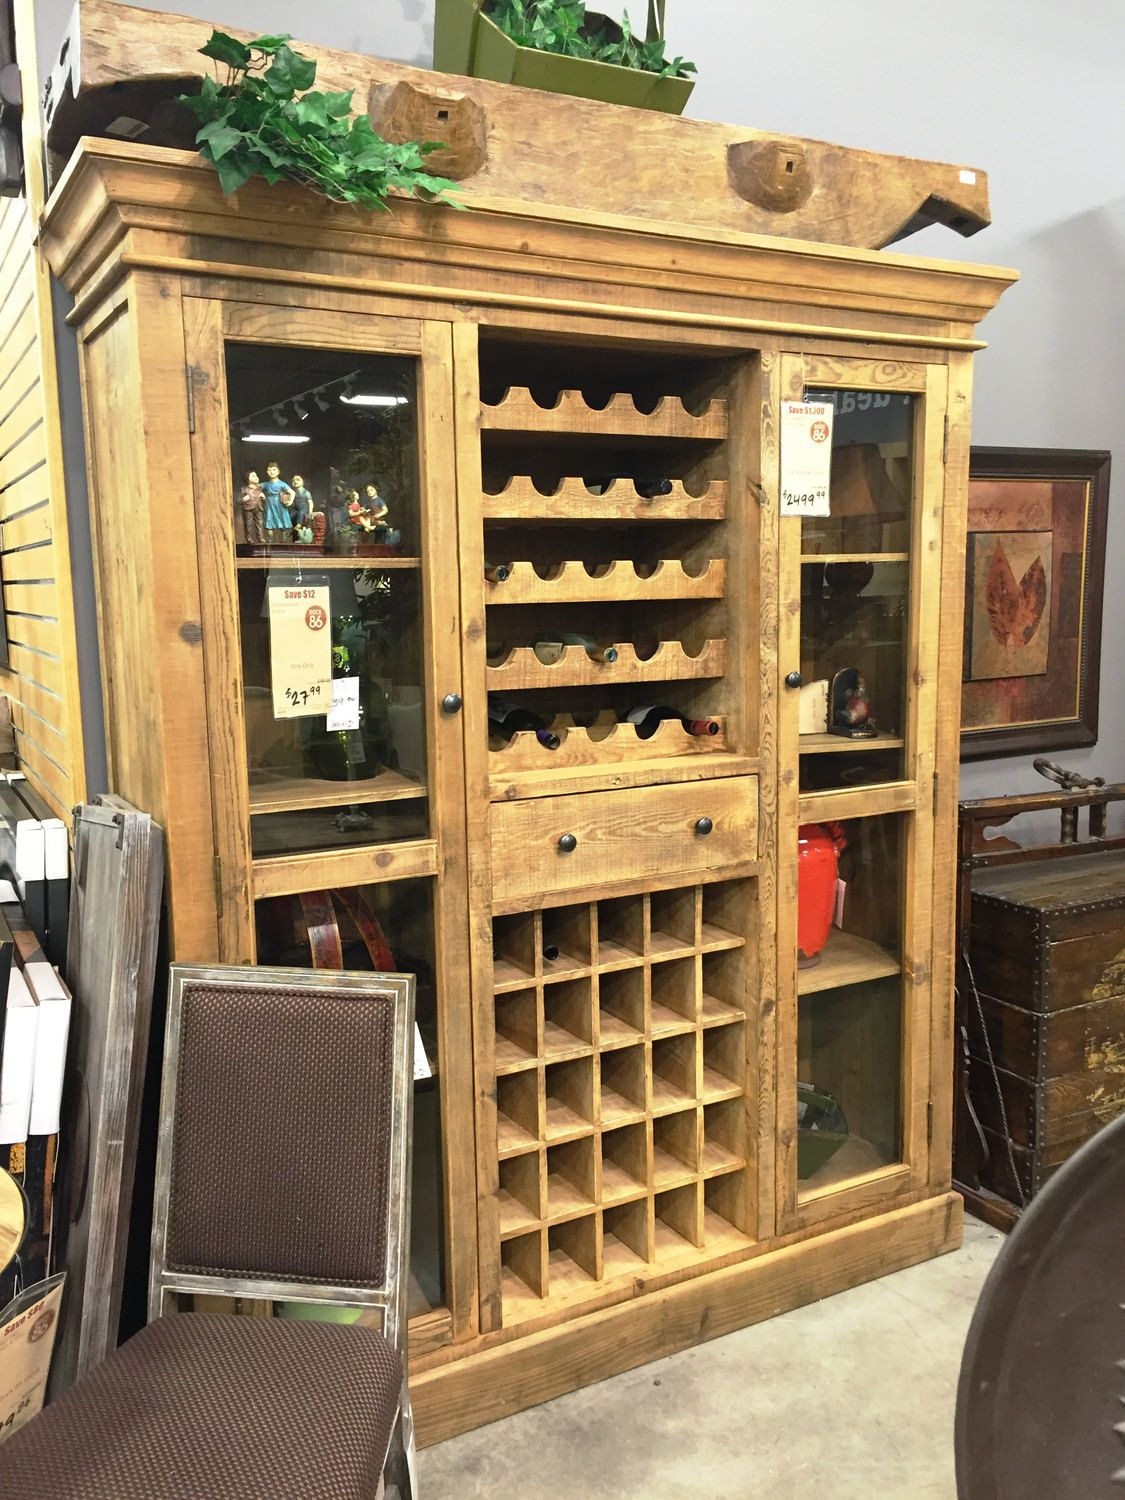 Reclaimed Wine Cabinet Dock86 Spend A Good Deal Less On Furniture In Minneapolis And St Paul Mn Area